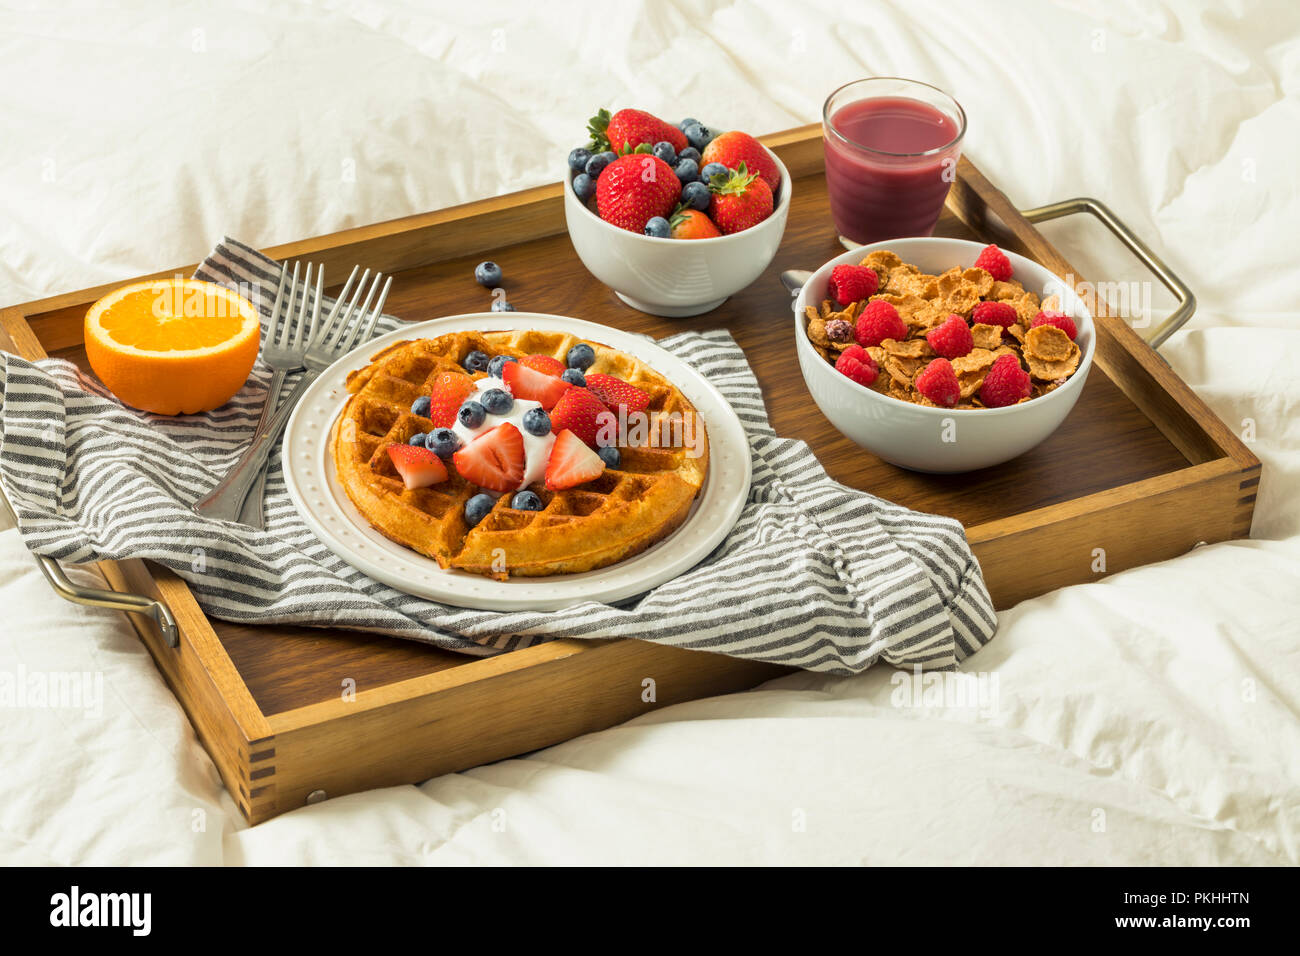 Healthy Homemade Breakfast In Bed With Waffles Fruit Cereal Stock Photo Alamy